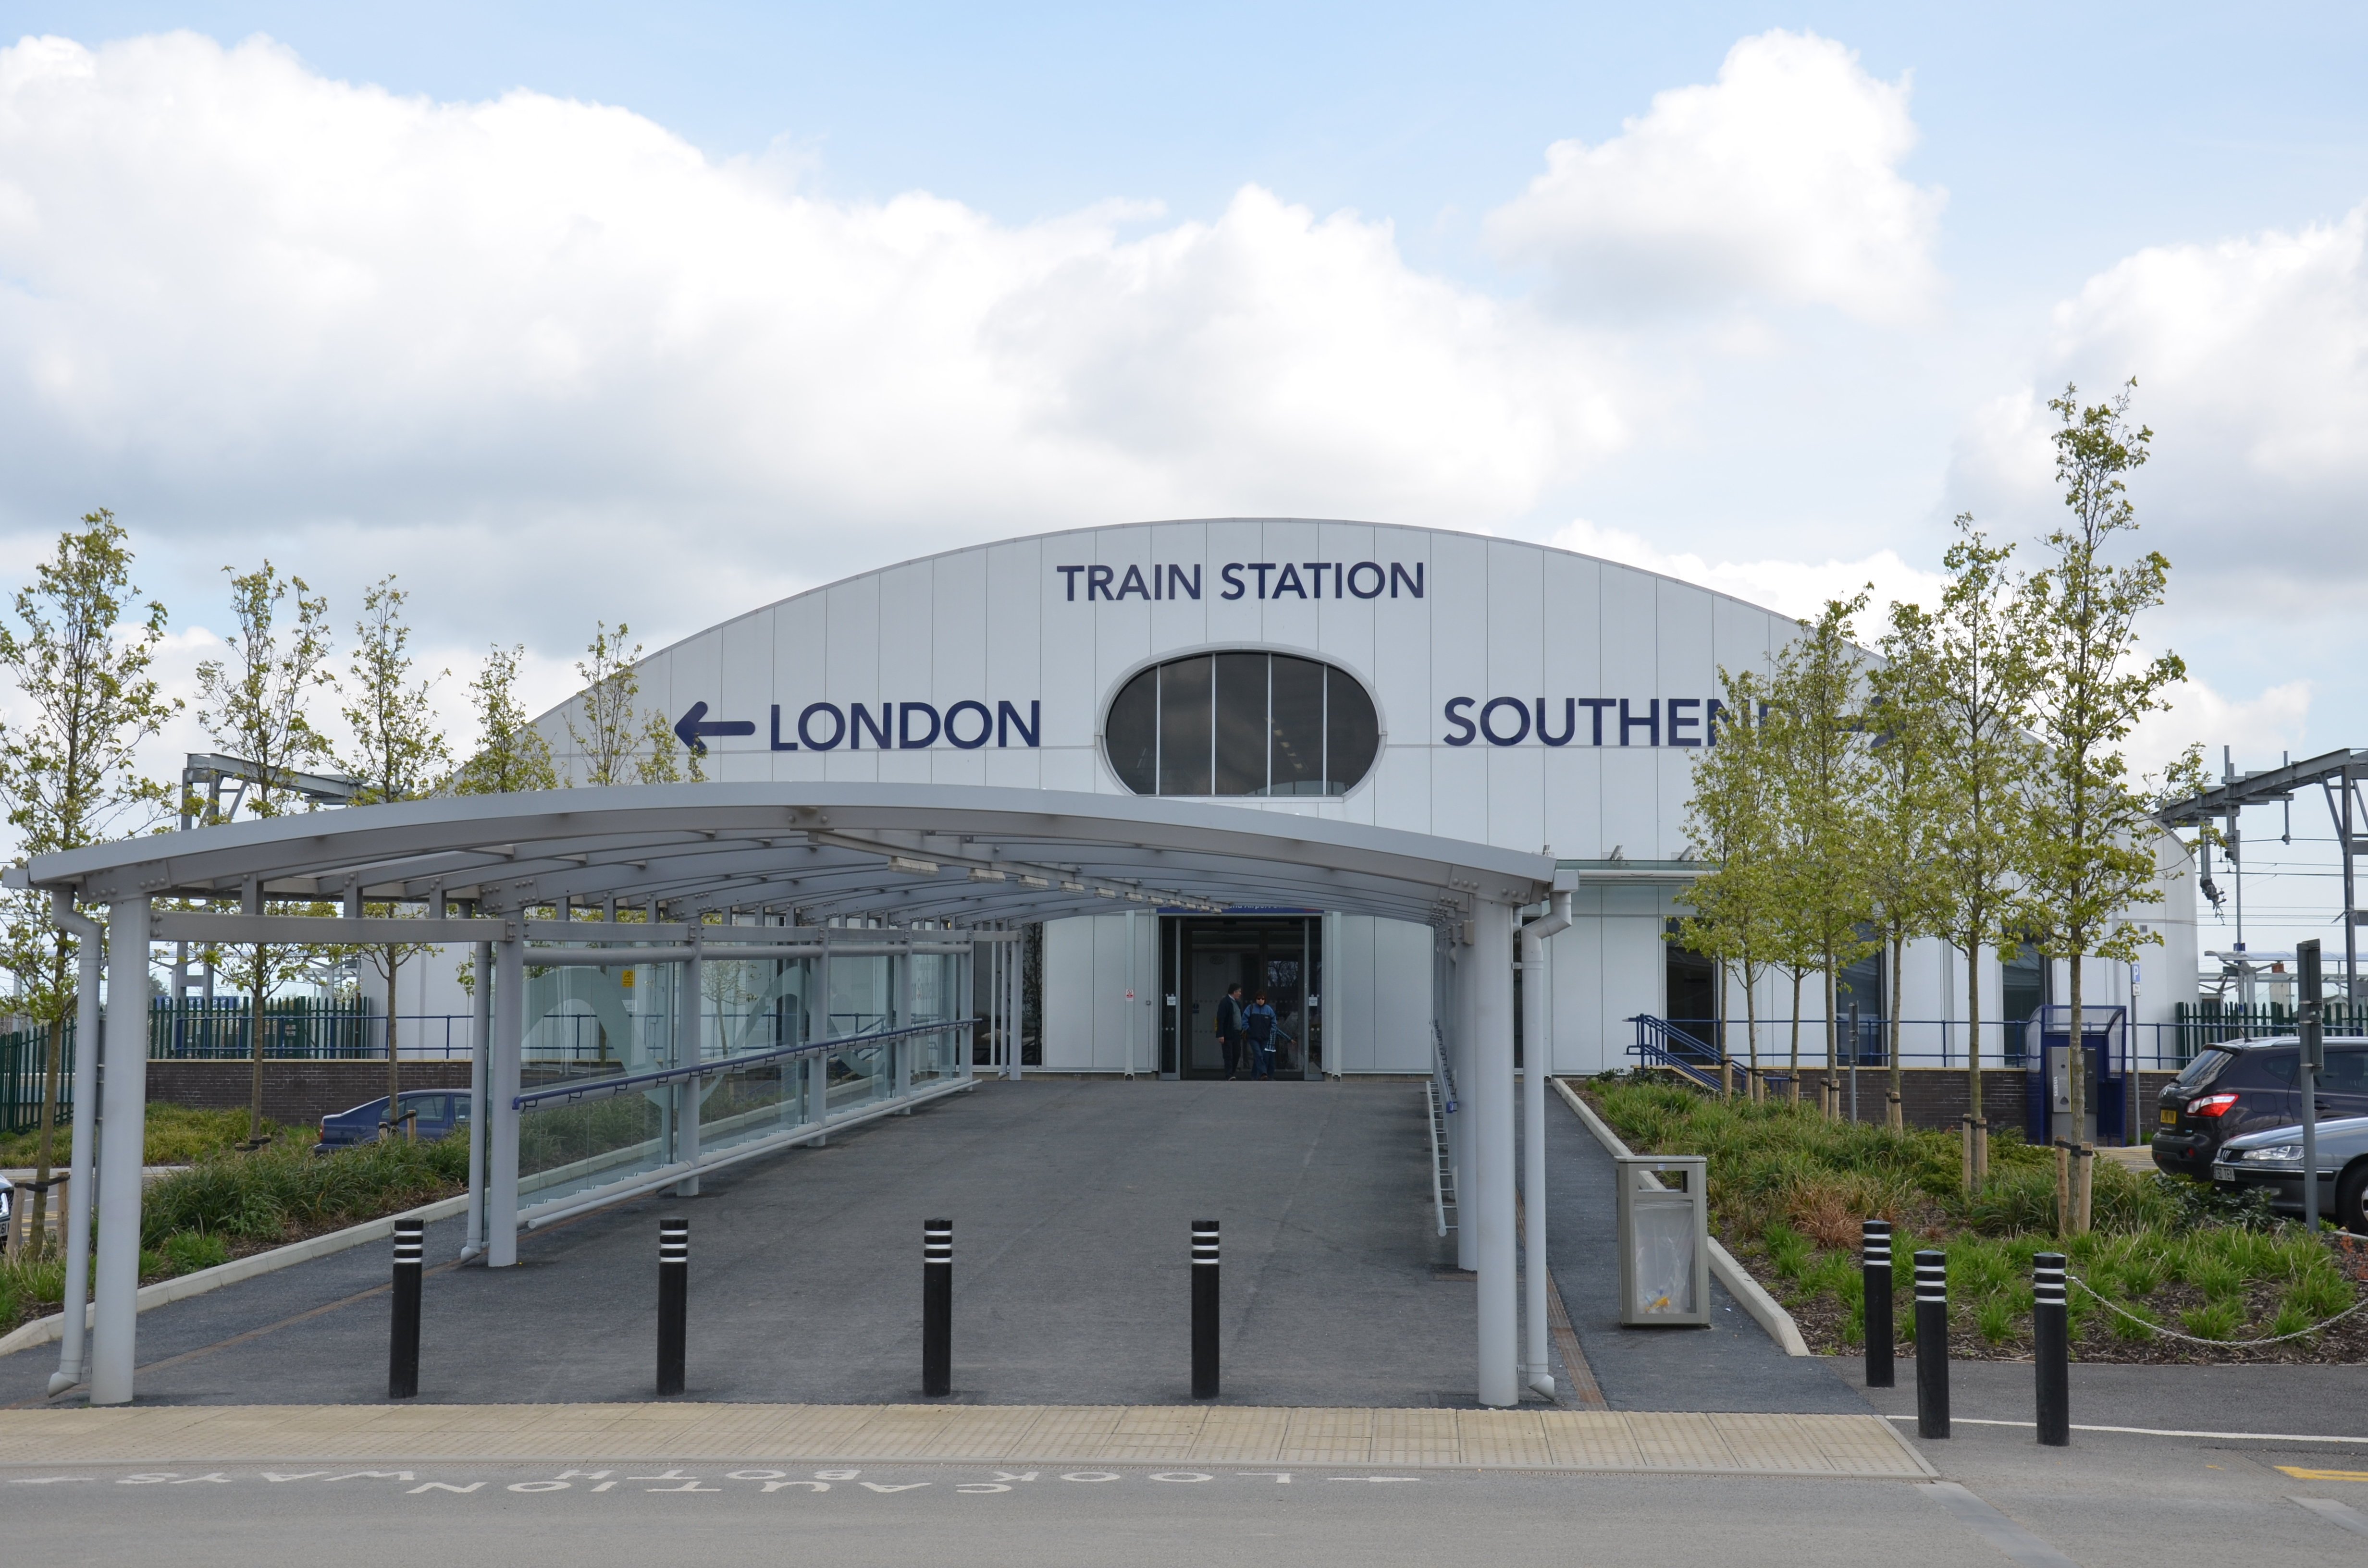 southend airport railway station wikipedia. Black Bedroom Furniture Sets. Home Design Ideas